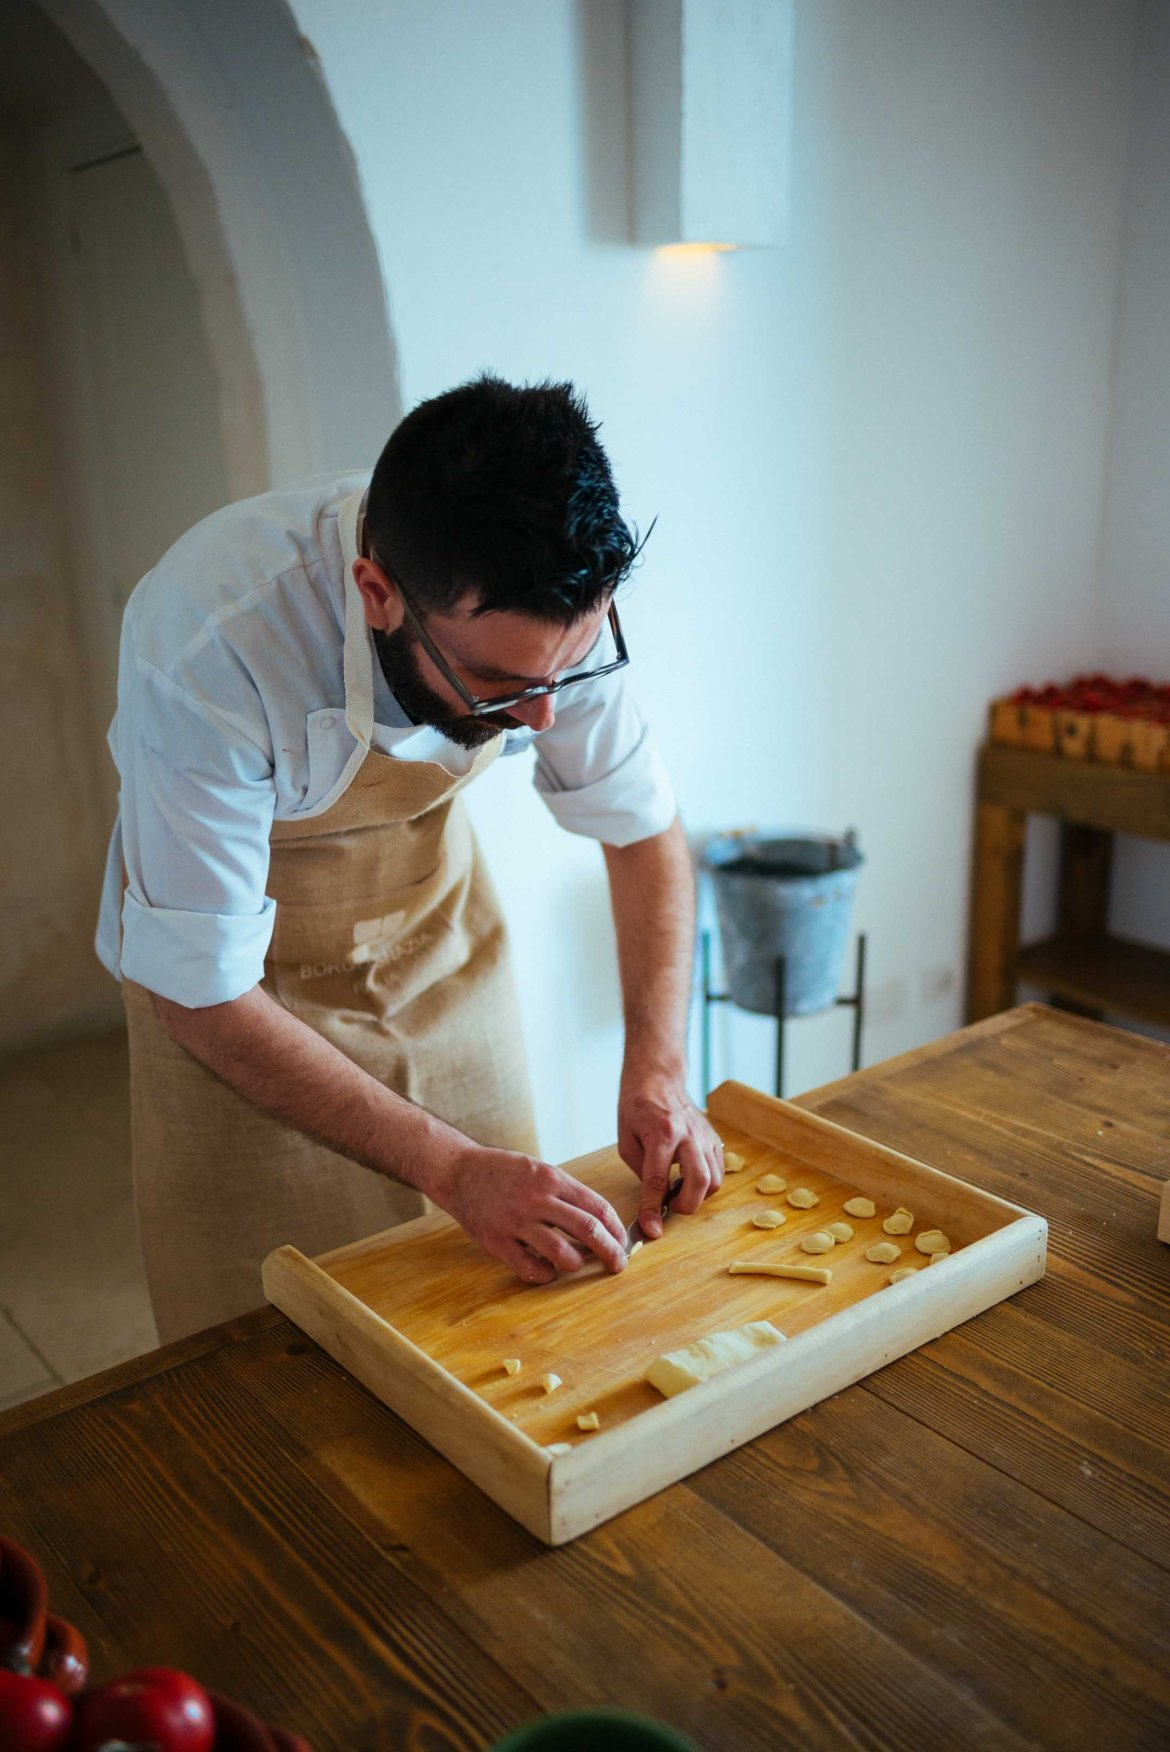 the taste edit learns how to make pasta in puglia by hand.